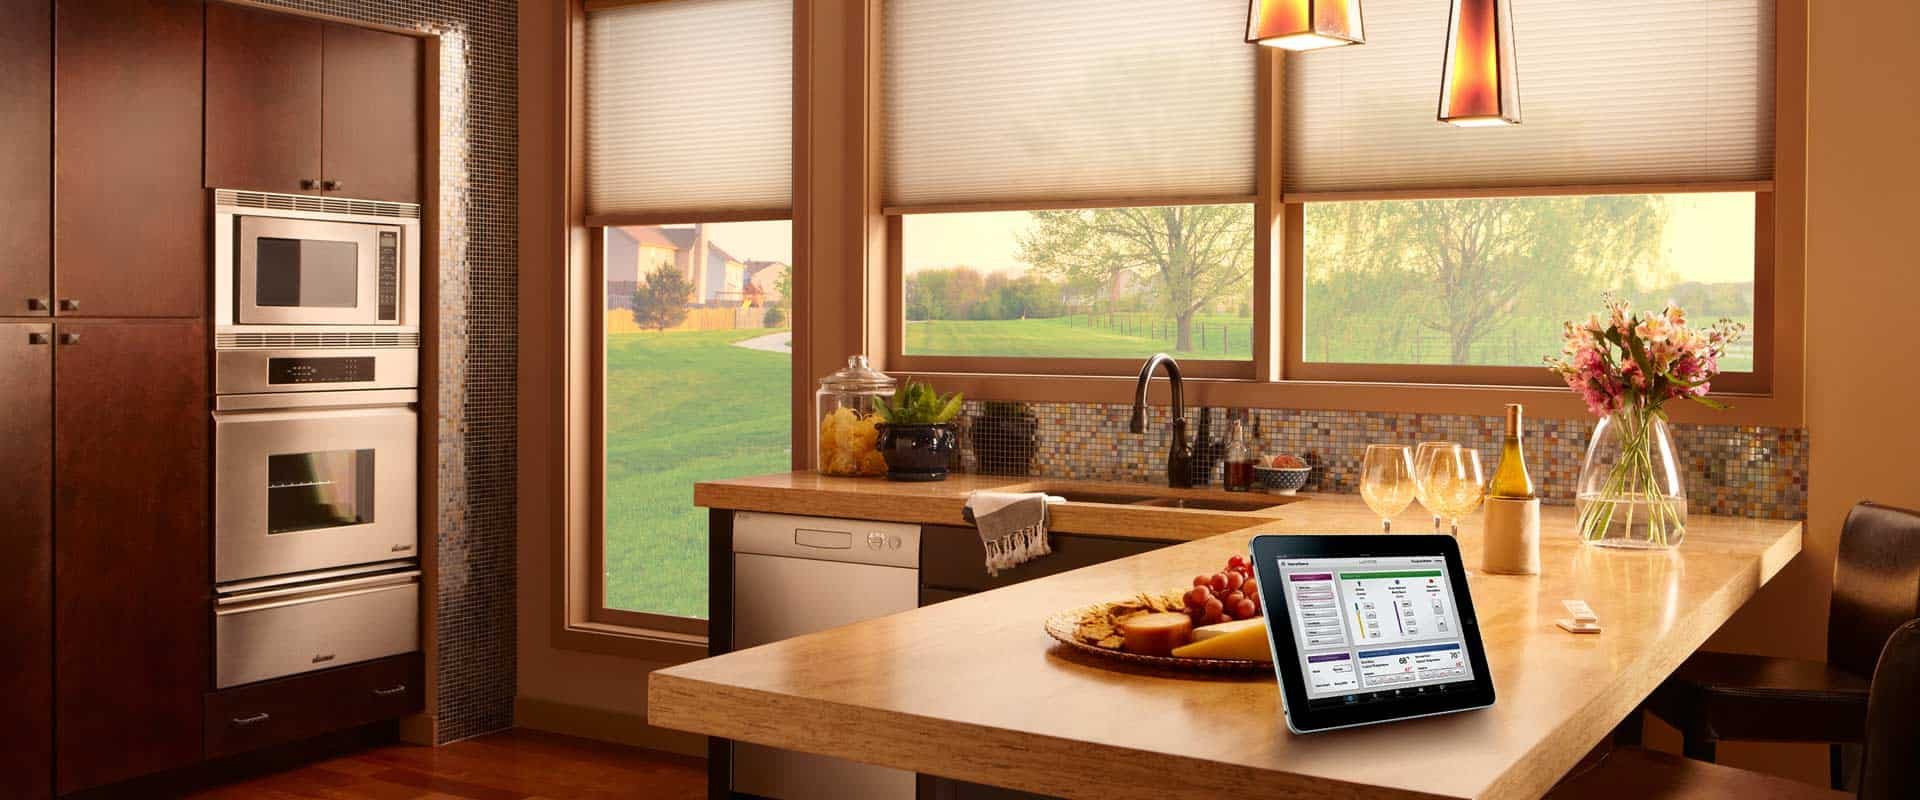 Lighting & Shade Control Systems